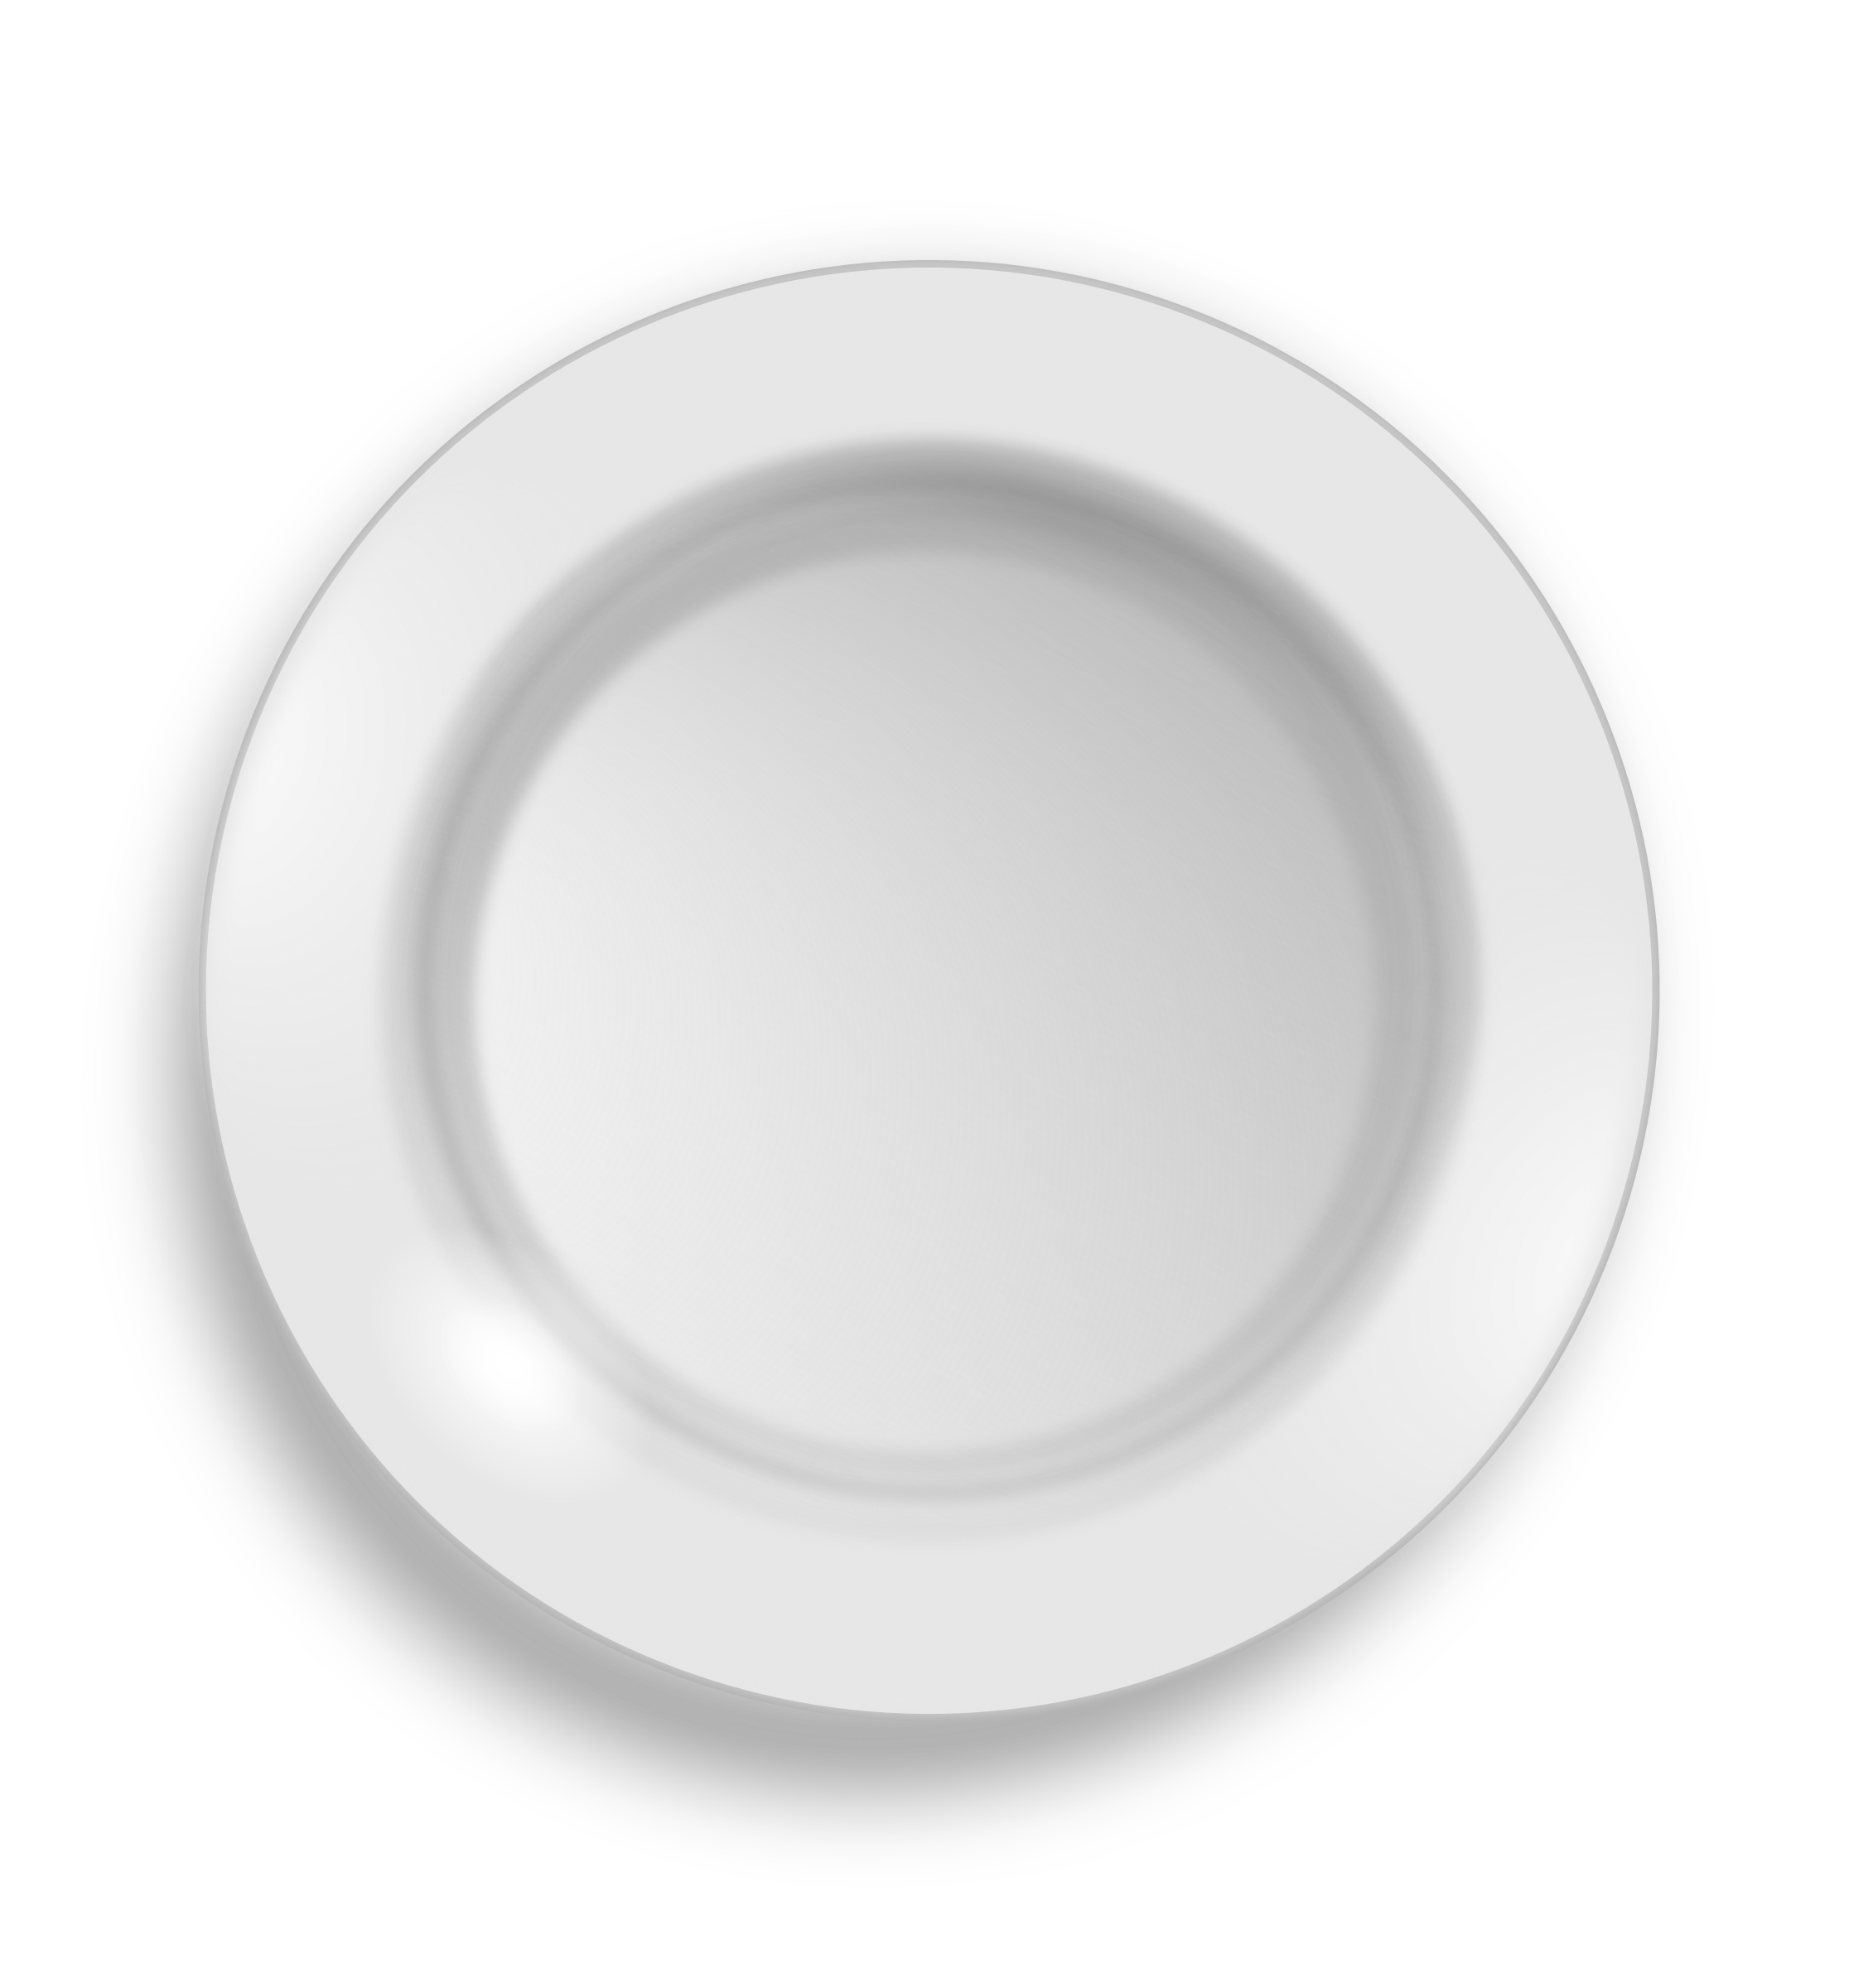 Clipart - white plate - Plate HD PNG